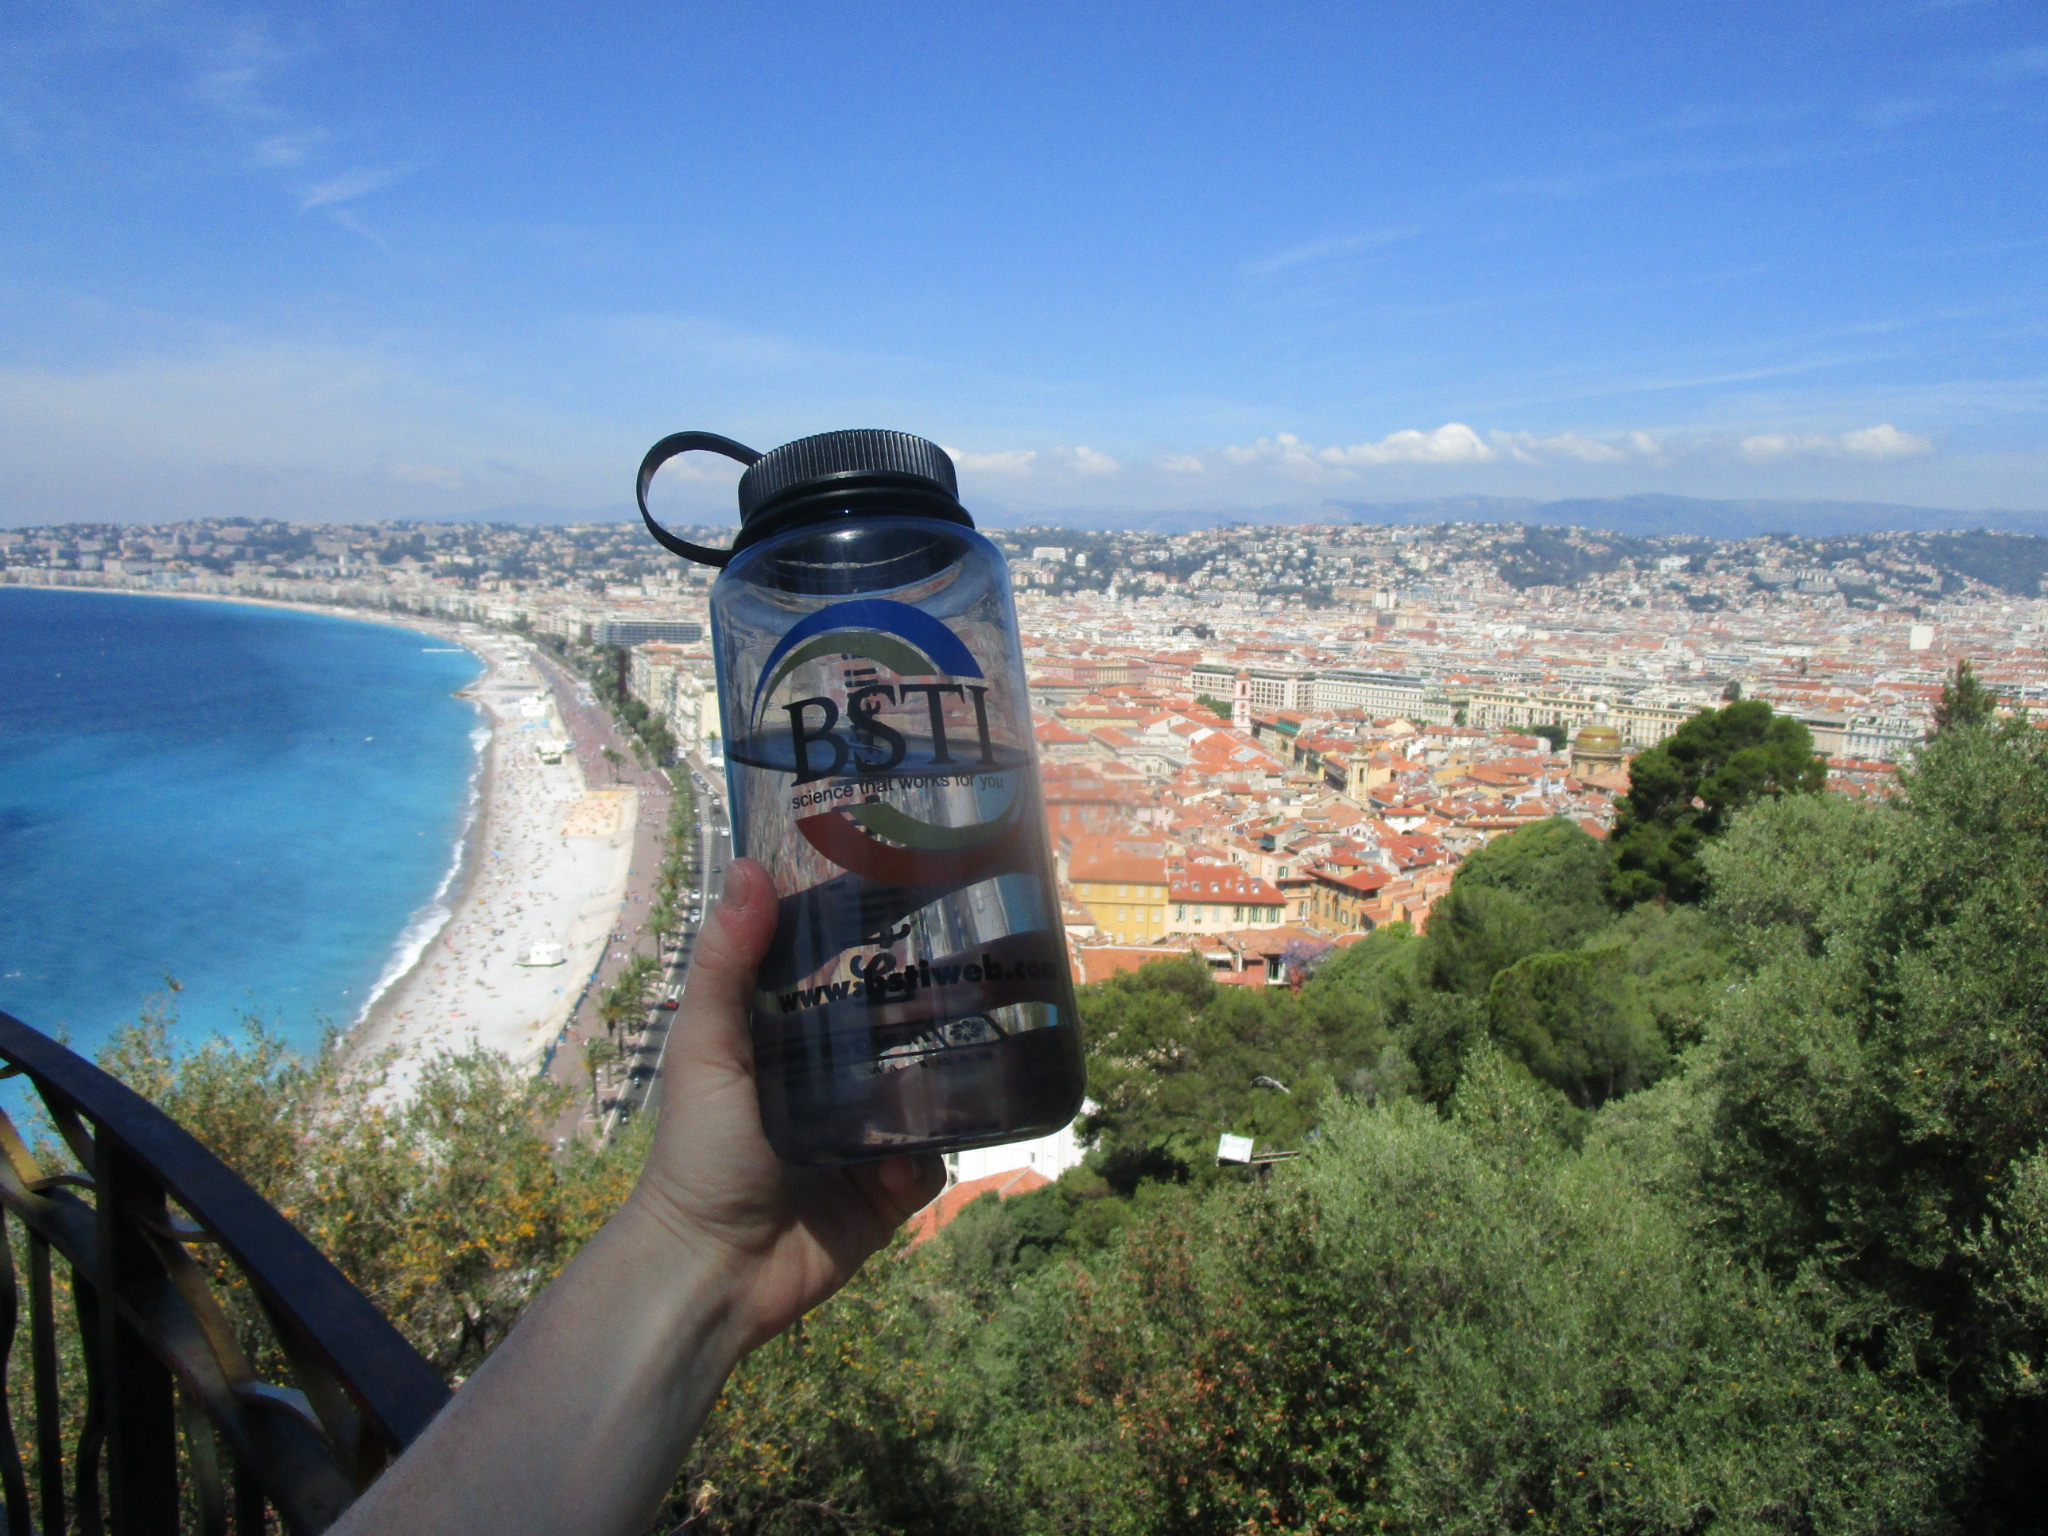 Enjoying a nice view in Nice, France